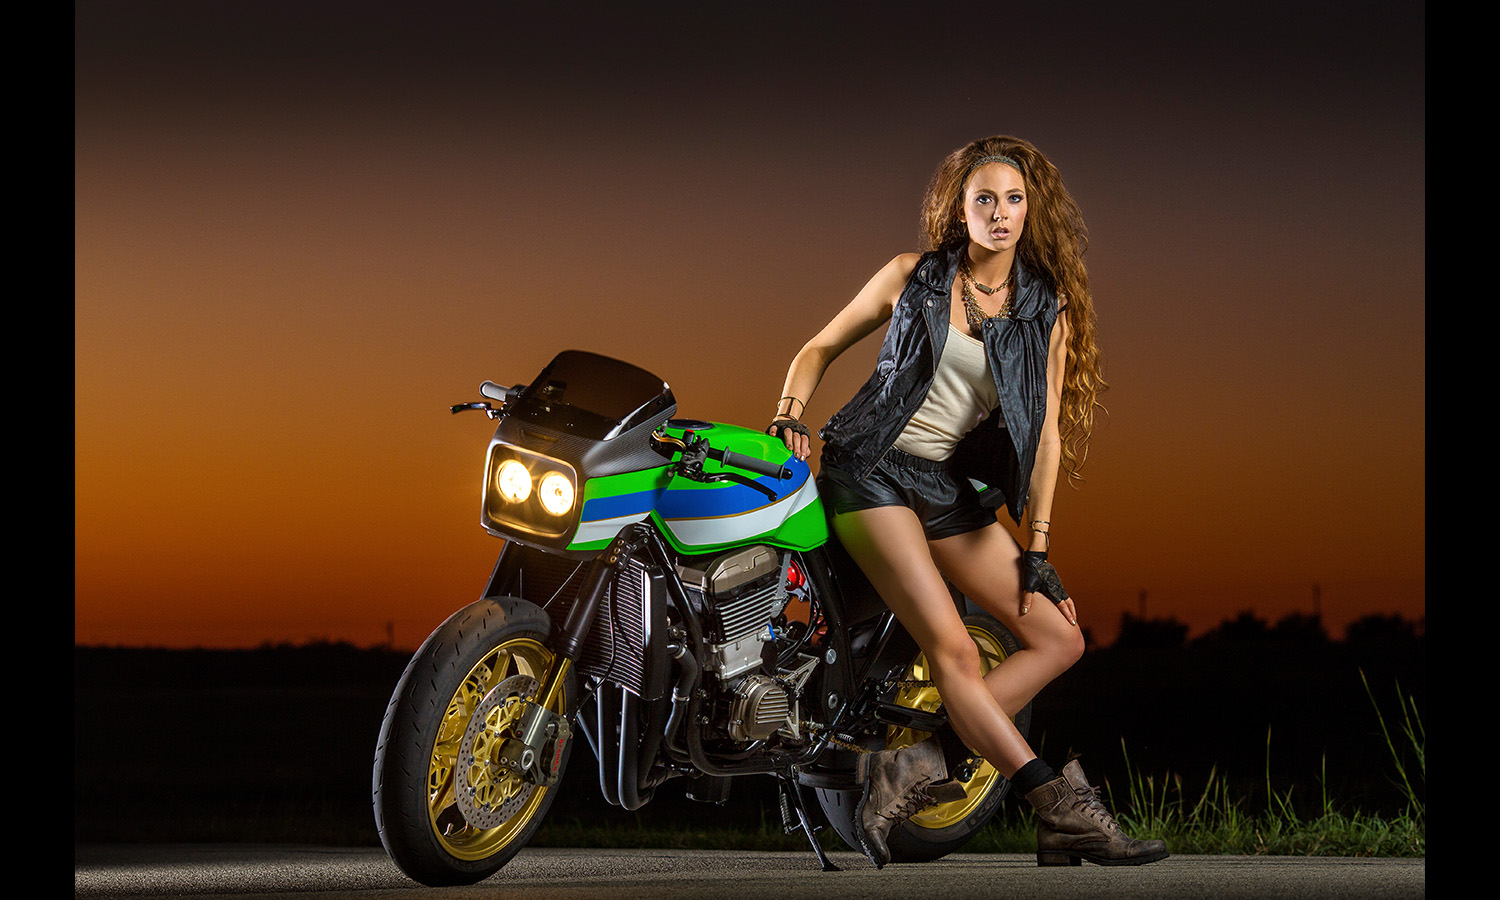 babe with superbike Motorcycle Babes